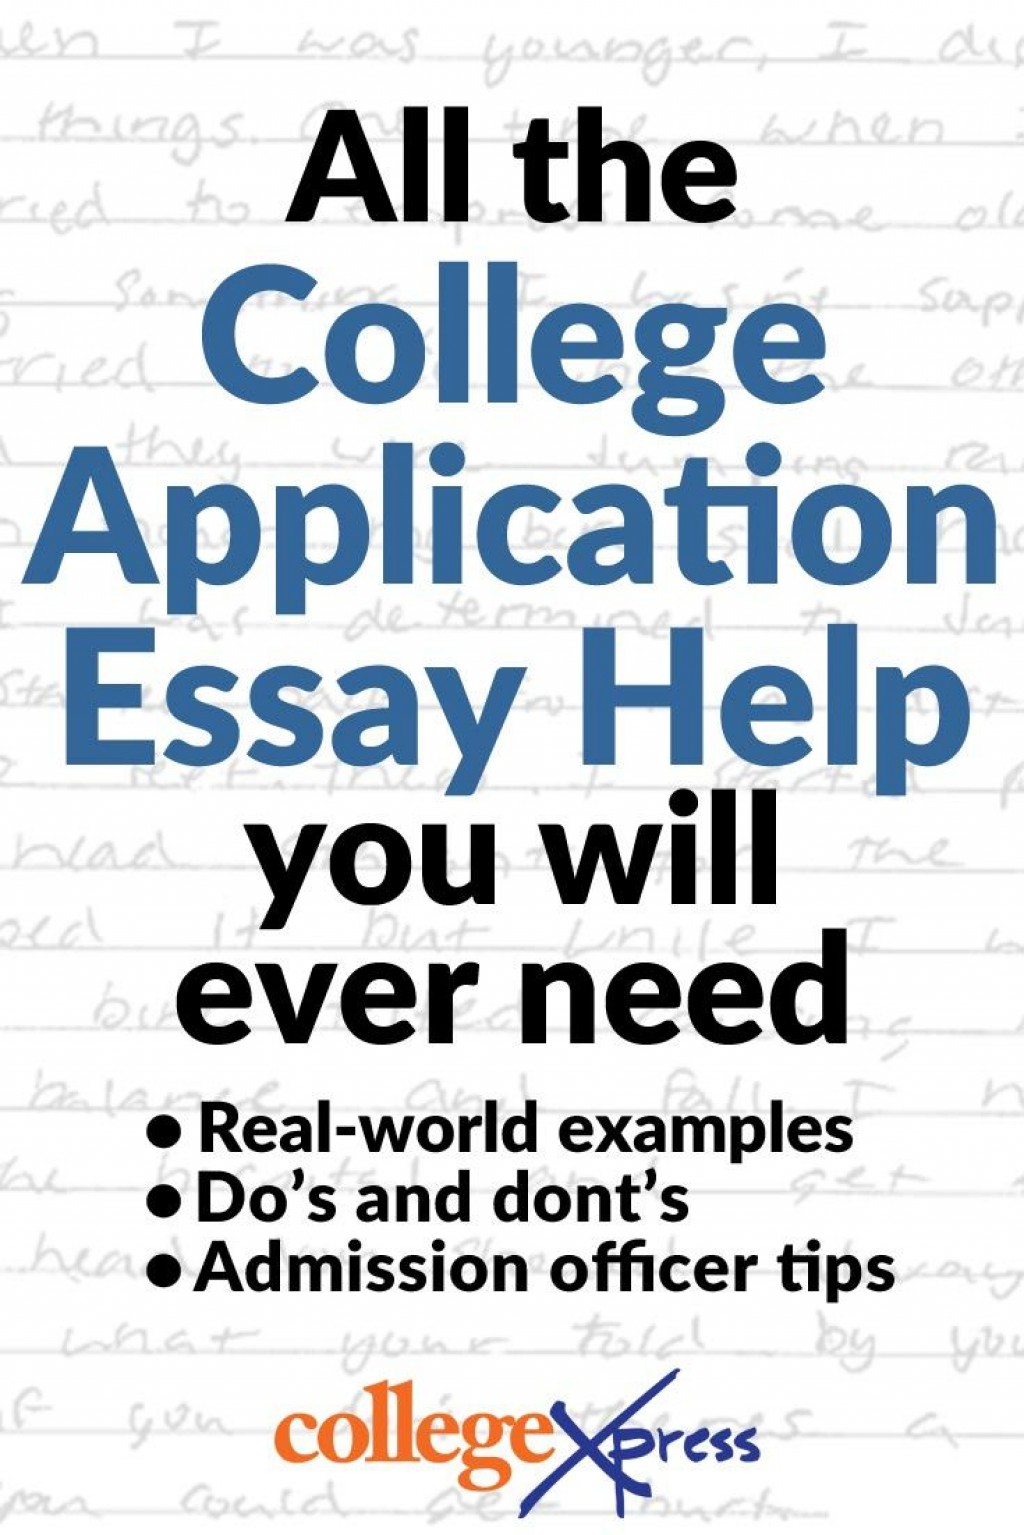 007 Colleges That Don T Require Essays Essay Example Excellent College Scholarships Do Not Best Don't Nc For Admission Large